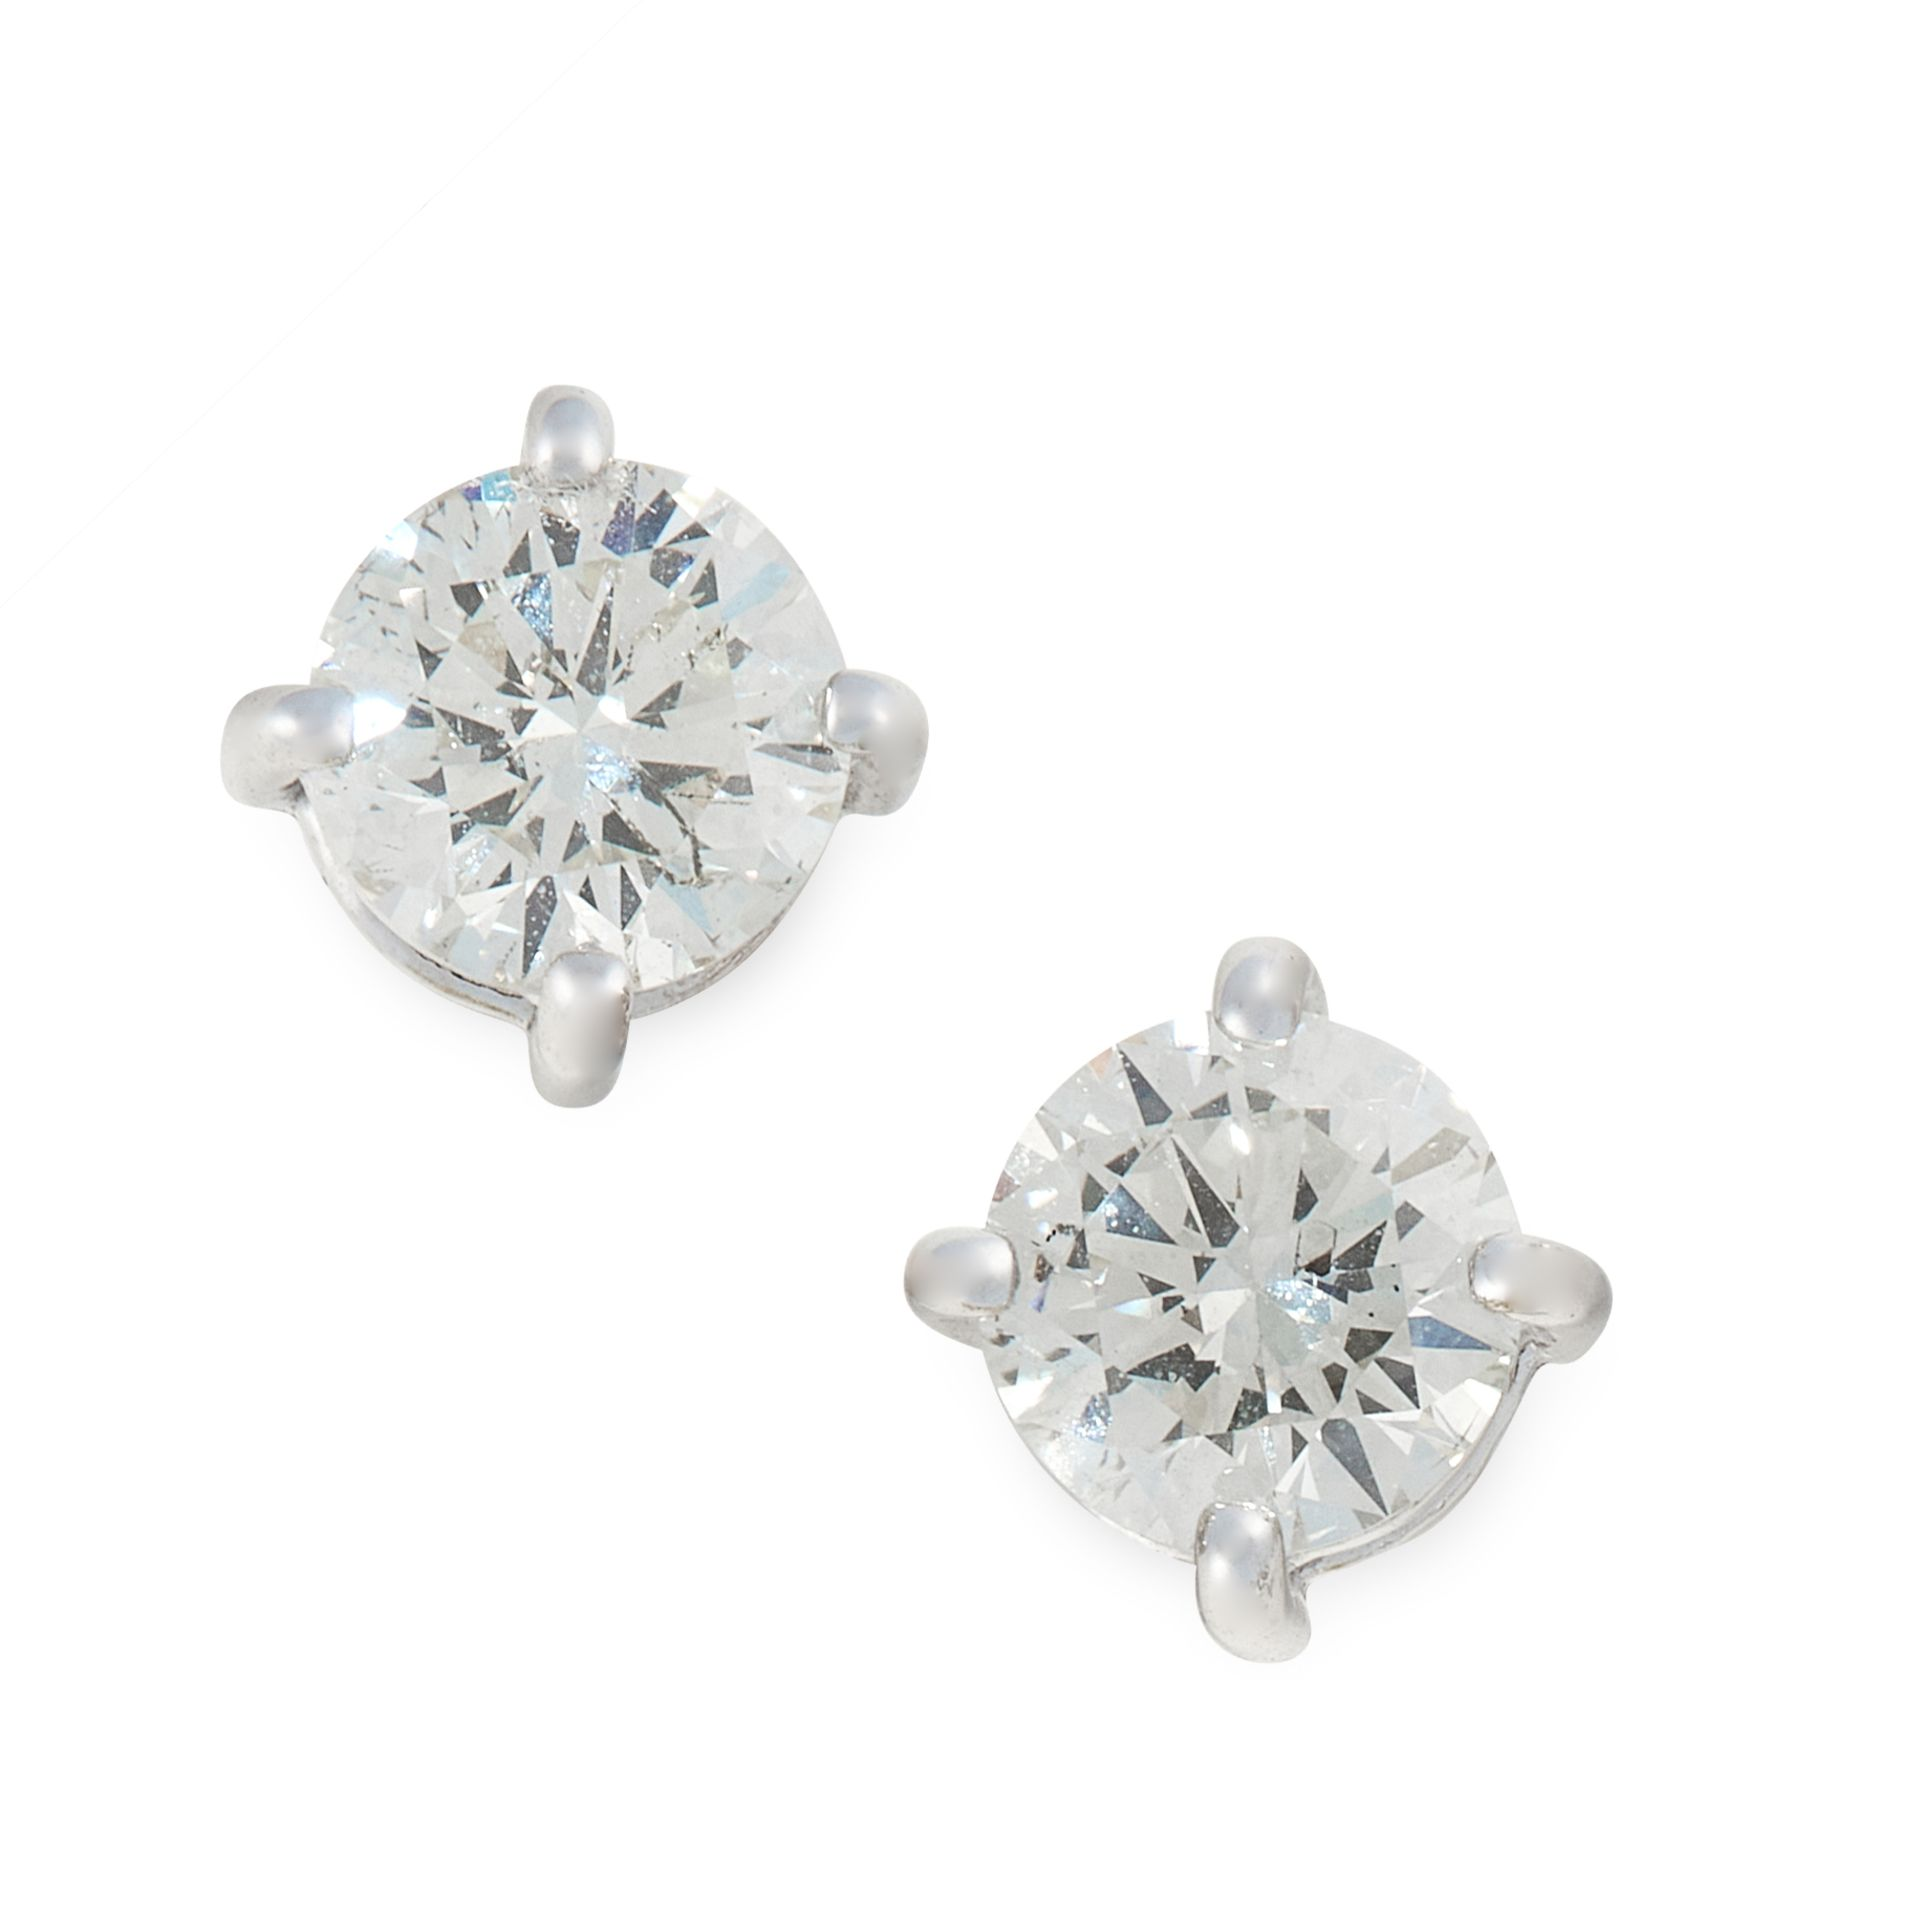 A PAIR OF DIAMOND STUD EARRINGS in 18ct white gold, set with a round cut diamond totalling 1.05